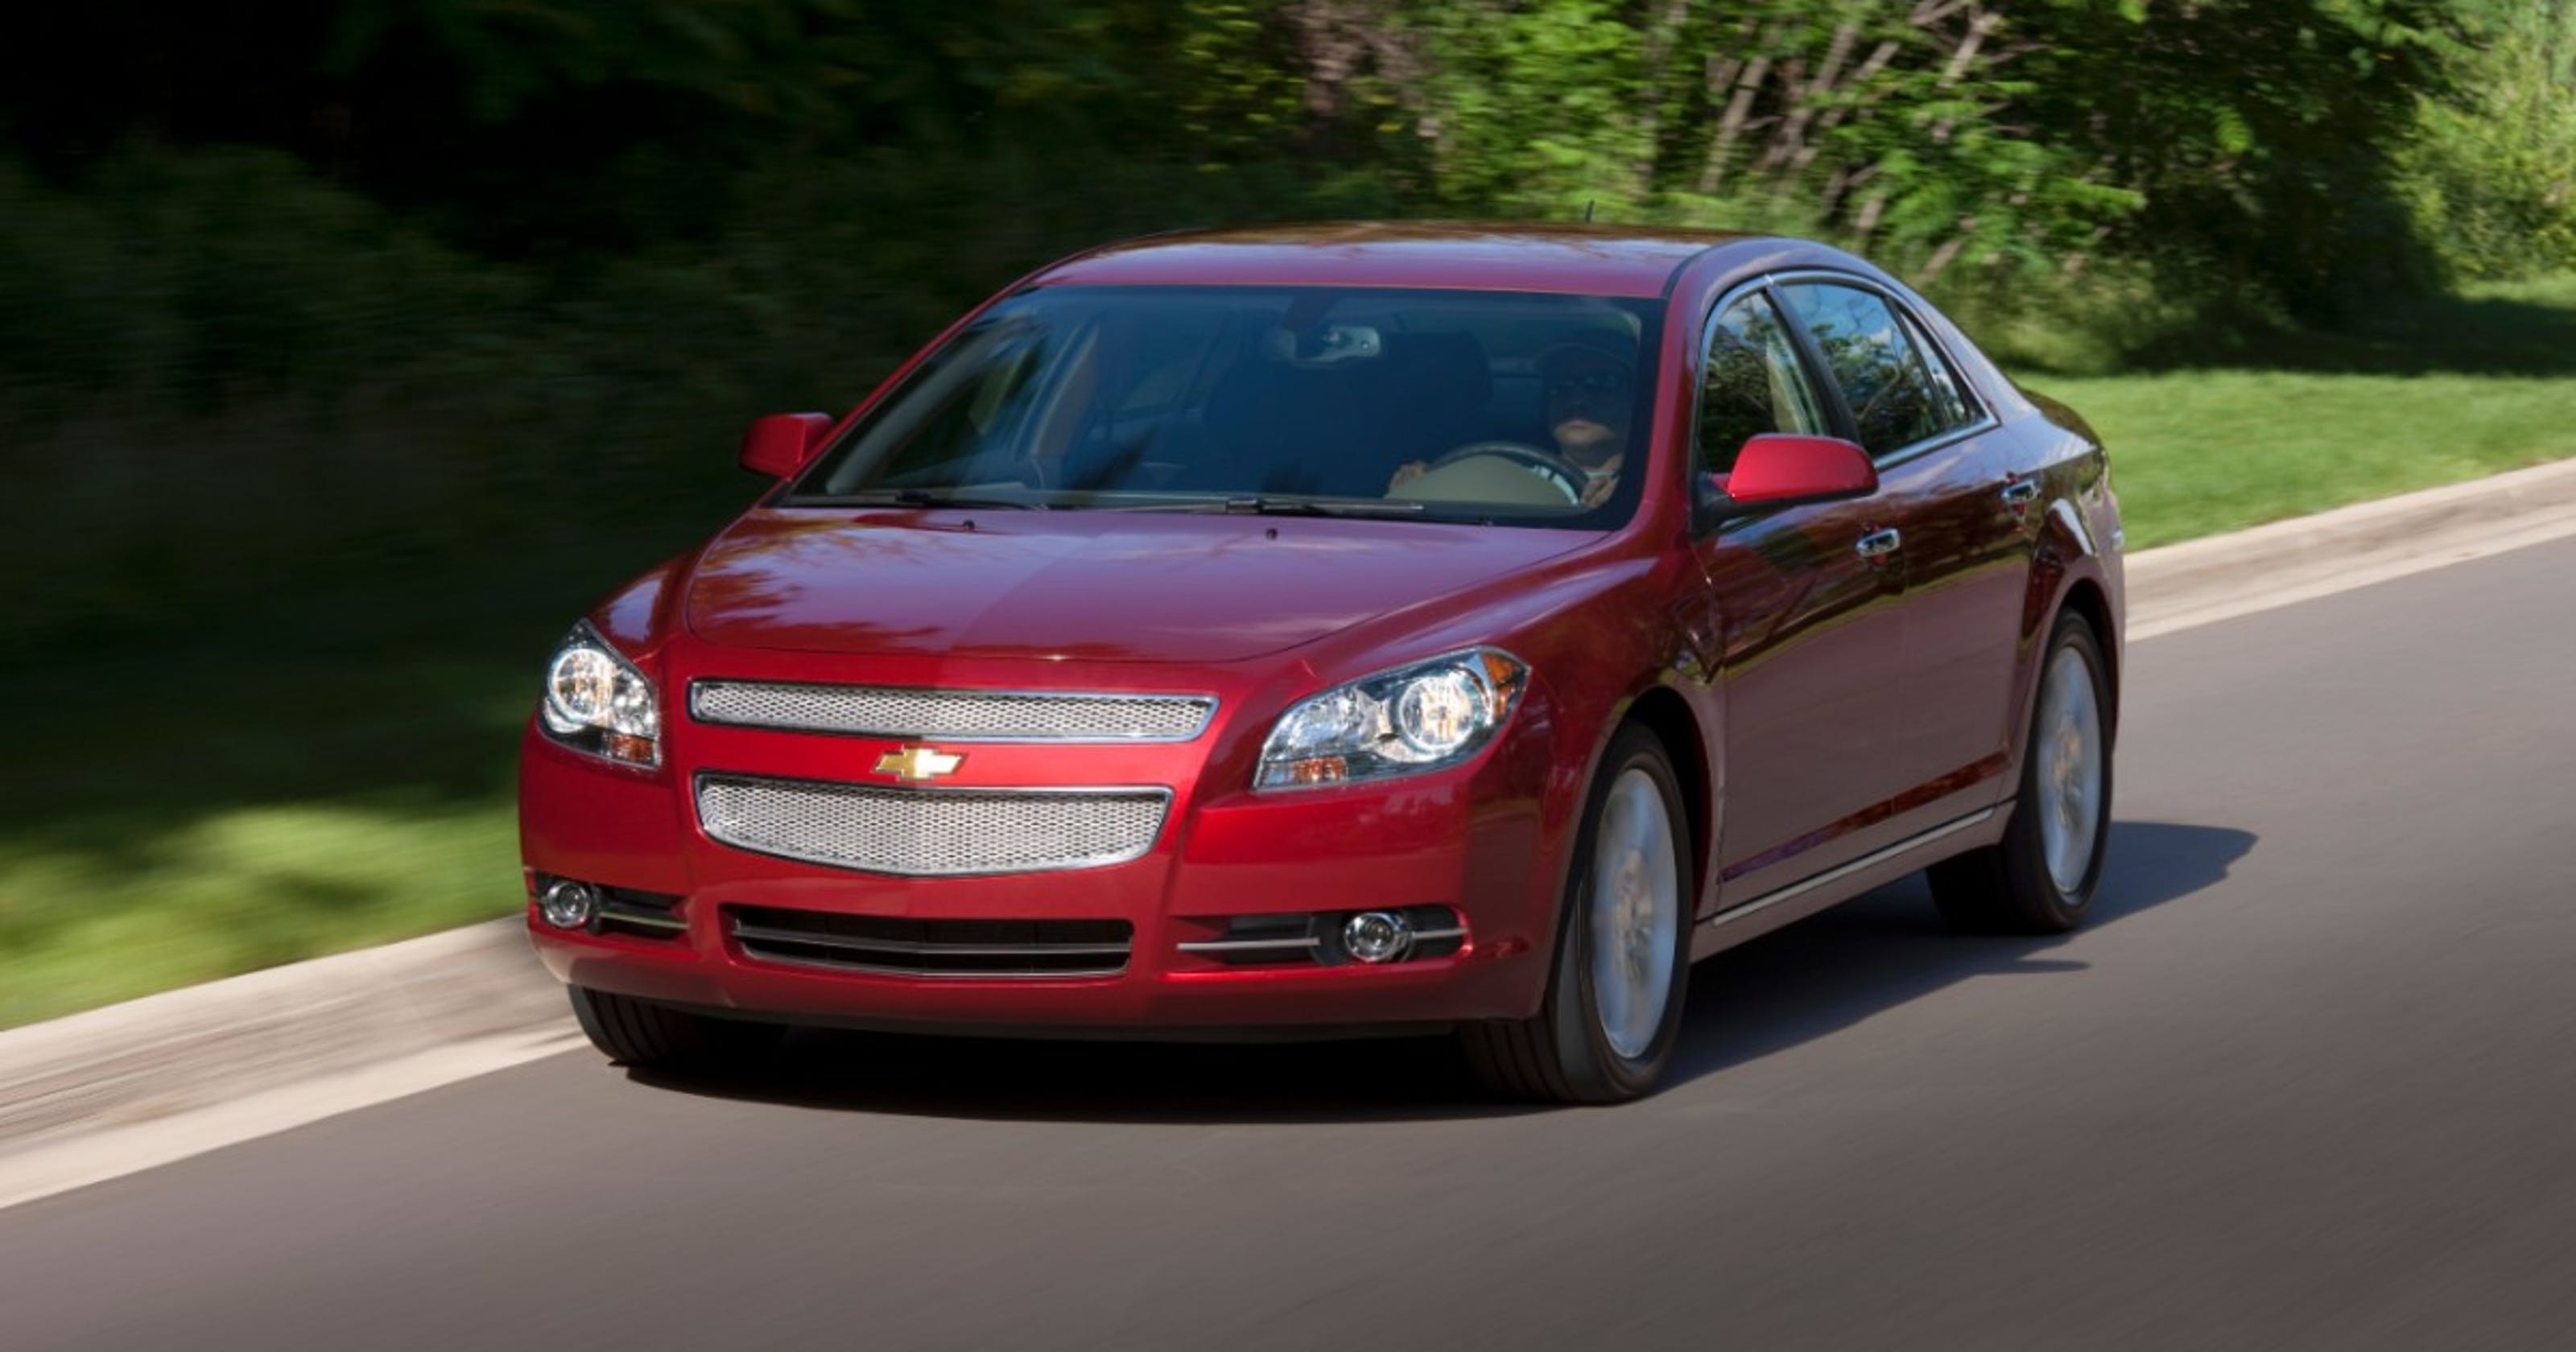 GM recalls 469,000 Chevrolet Malibus for seat belt cables